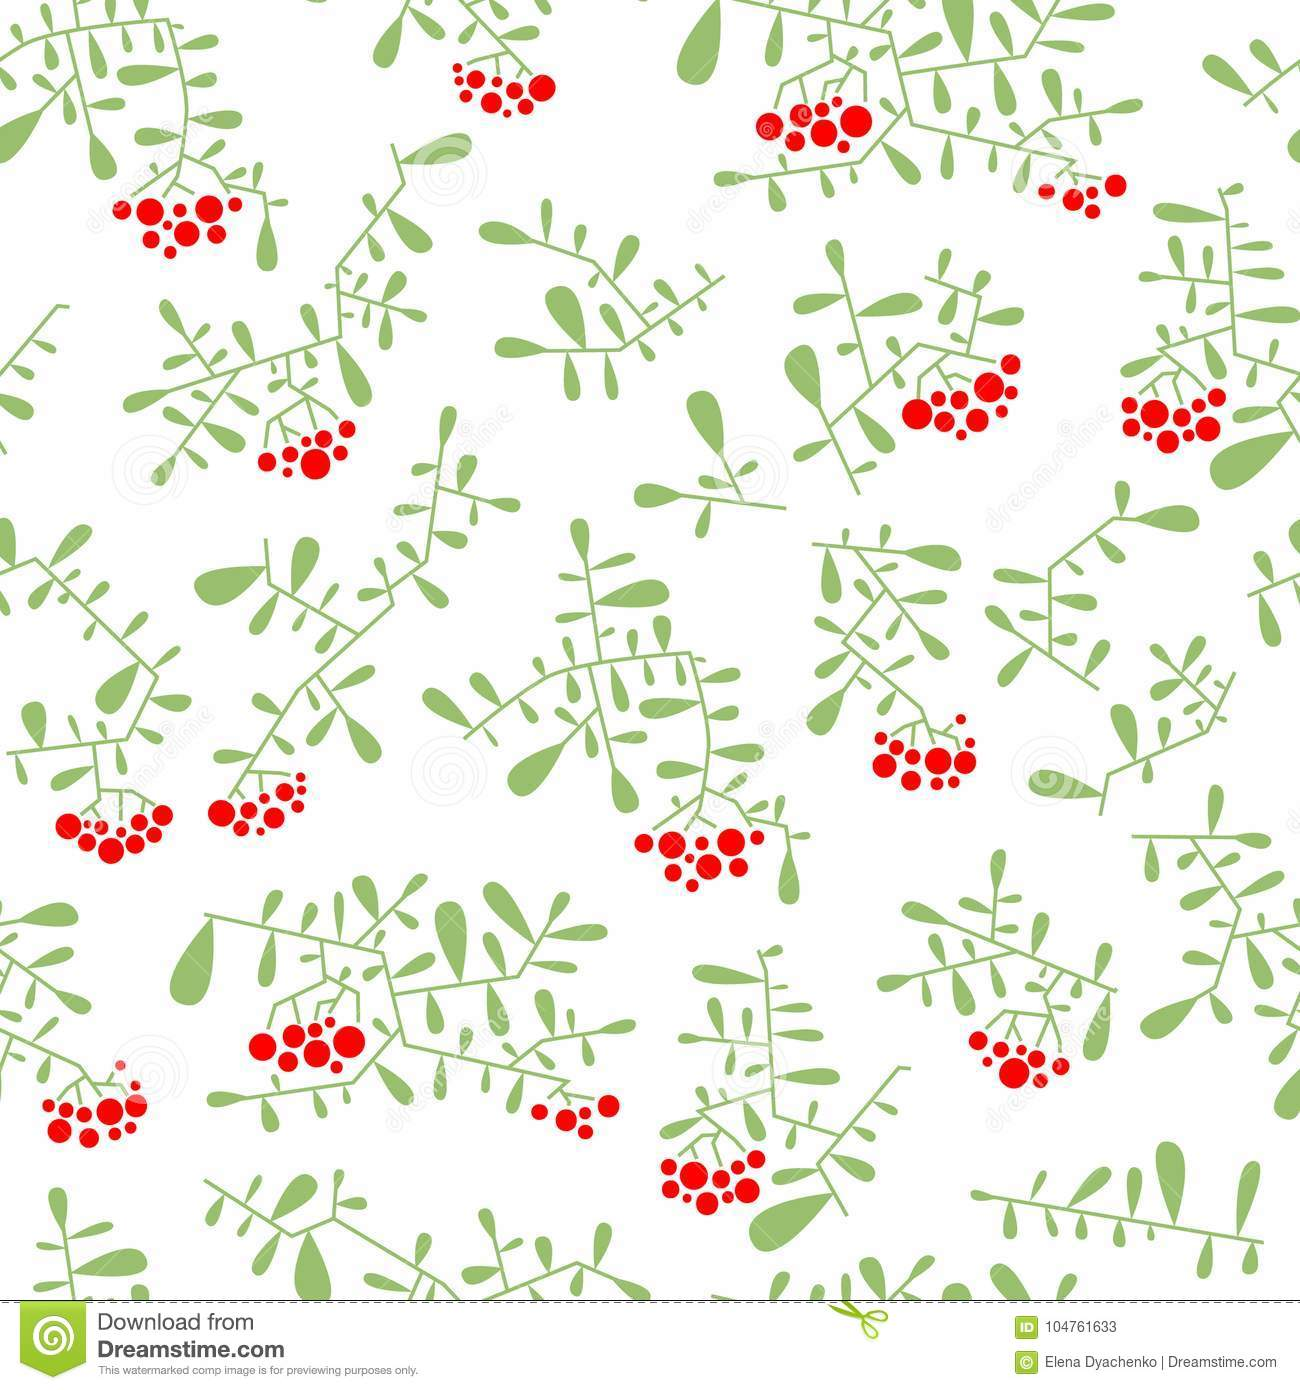 Rowan berry seamless pattern in flat simple style. Doodle floral